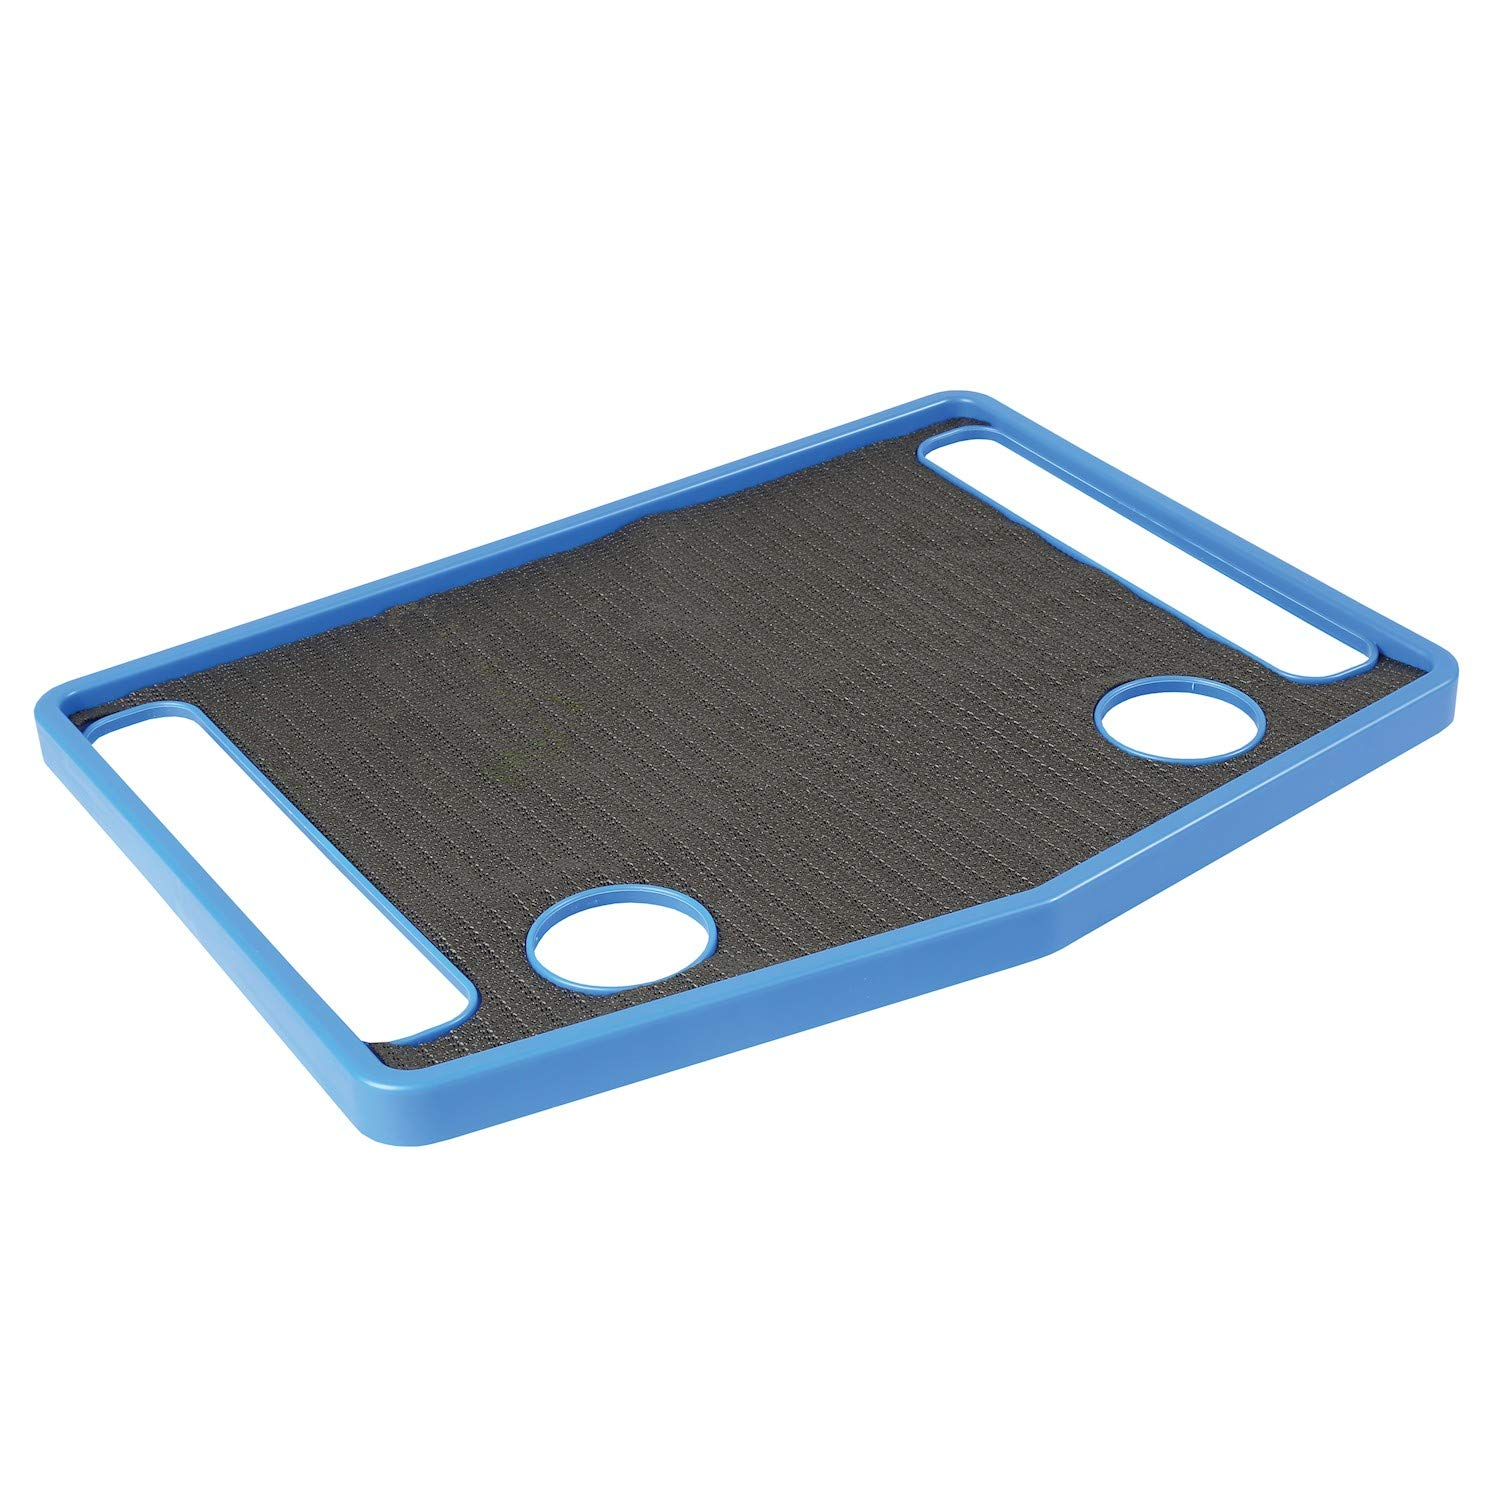 Support Plus Walker Tray Table Accessory with Non-Slip Mat/Cup Holders (21''x16'') - Royal Blue by SUPPORT PLUS